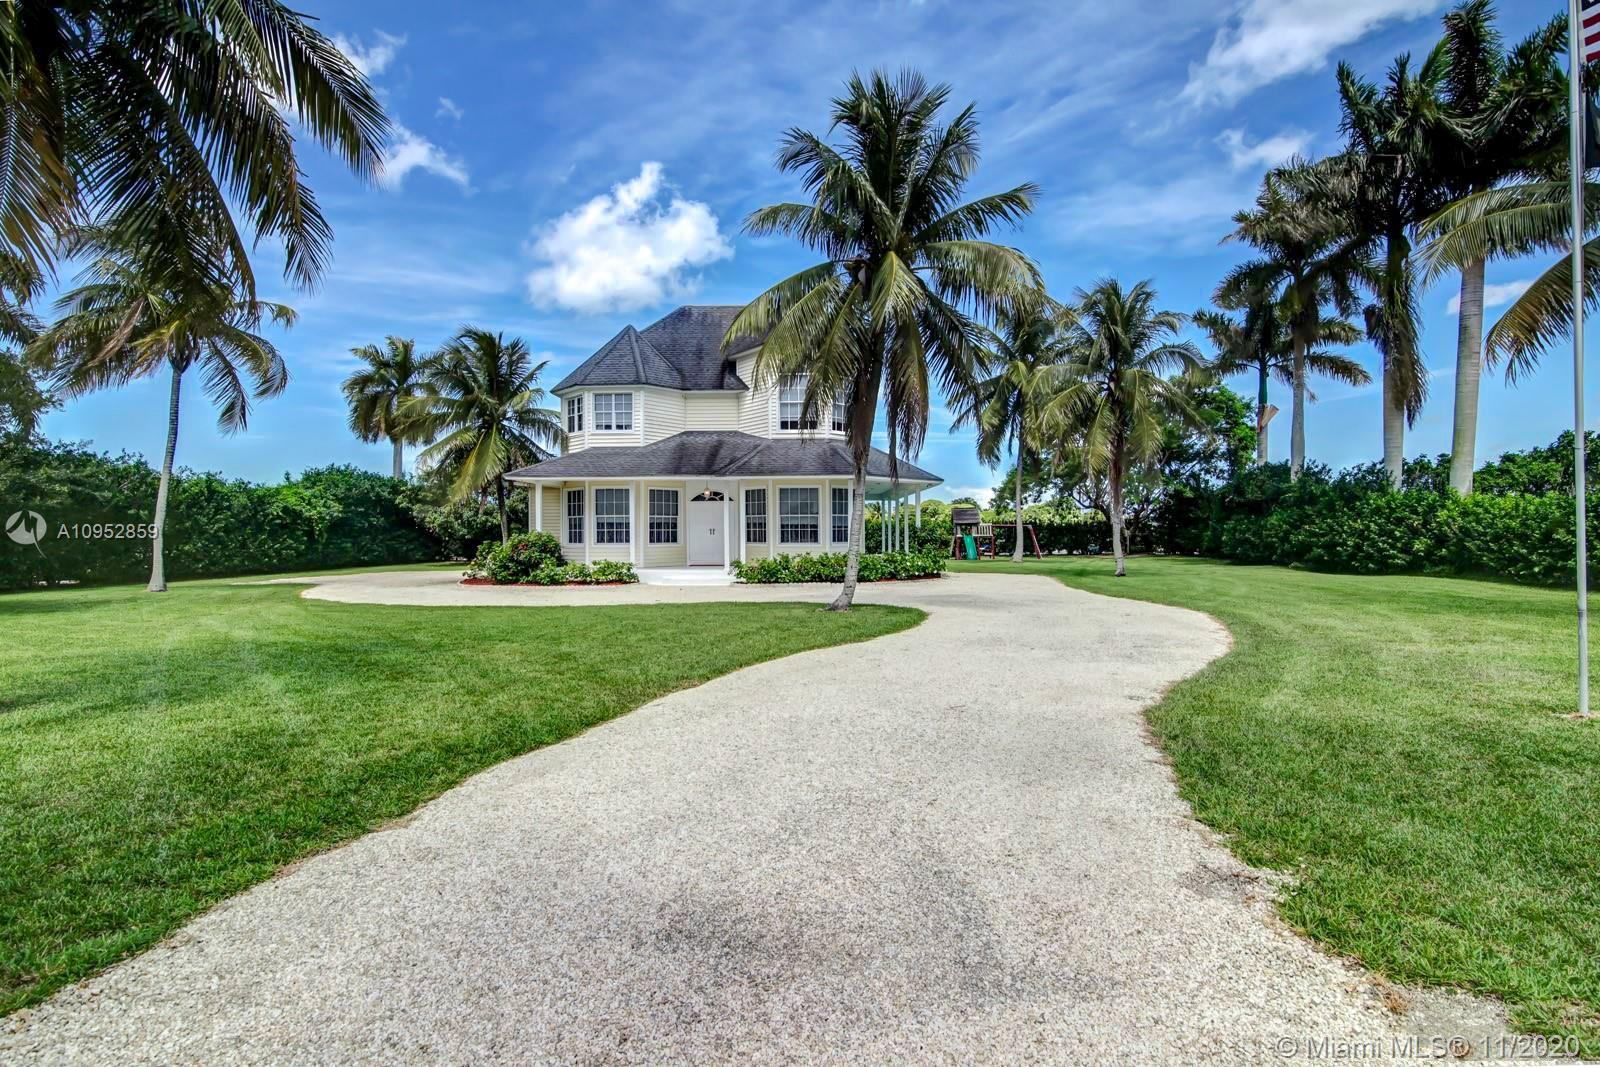 29125 SW 167th Ave Property Photo - Homestead, FL real estate listing